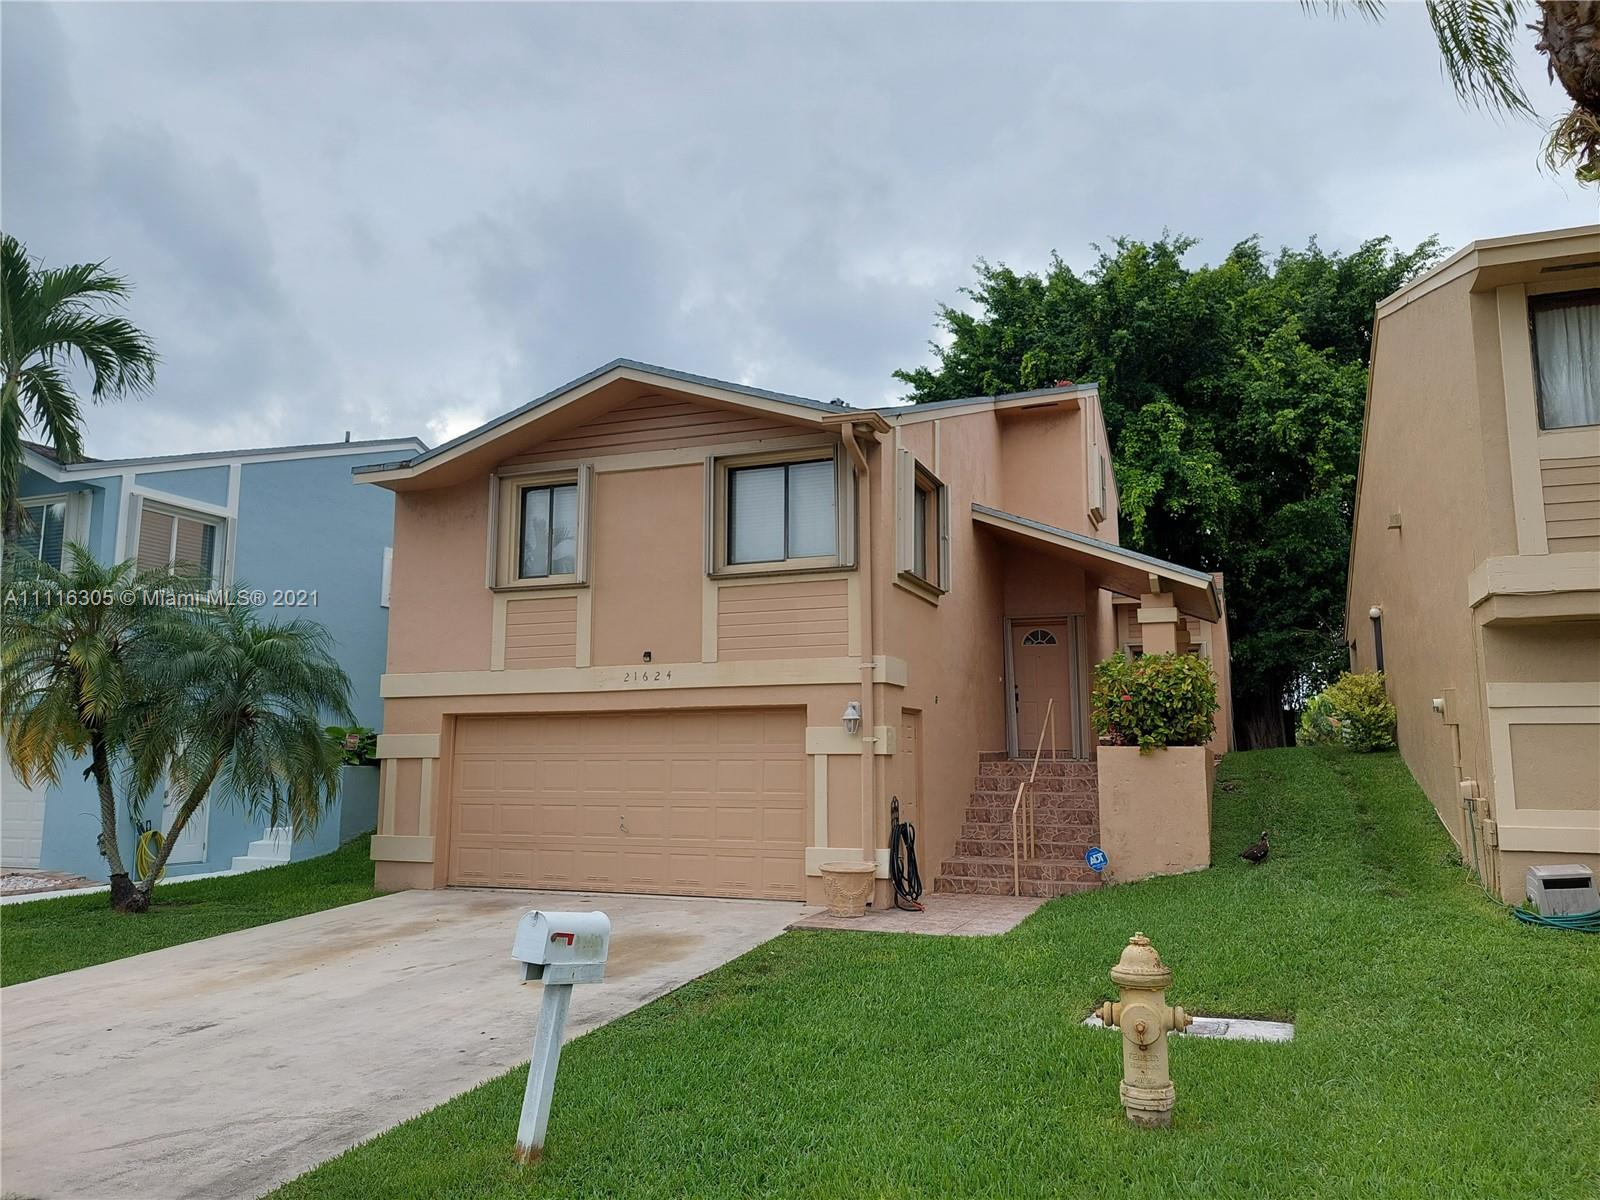 Single Family Home,For Sale,21624 SW 98th Pl, Cutler Bay, Florida 33190,Brickell,realty,broker,condos near me